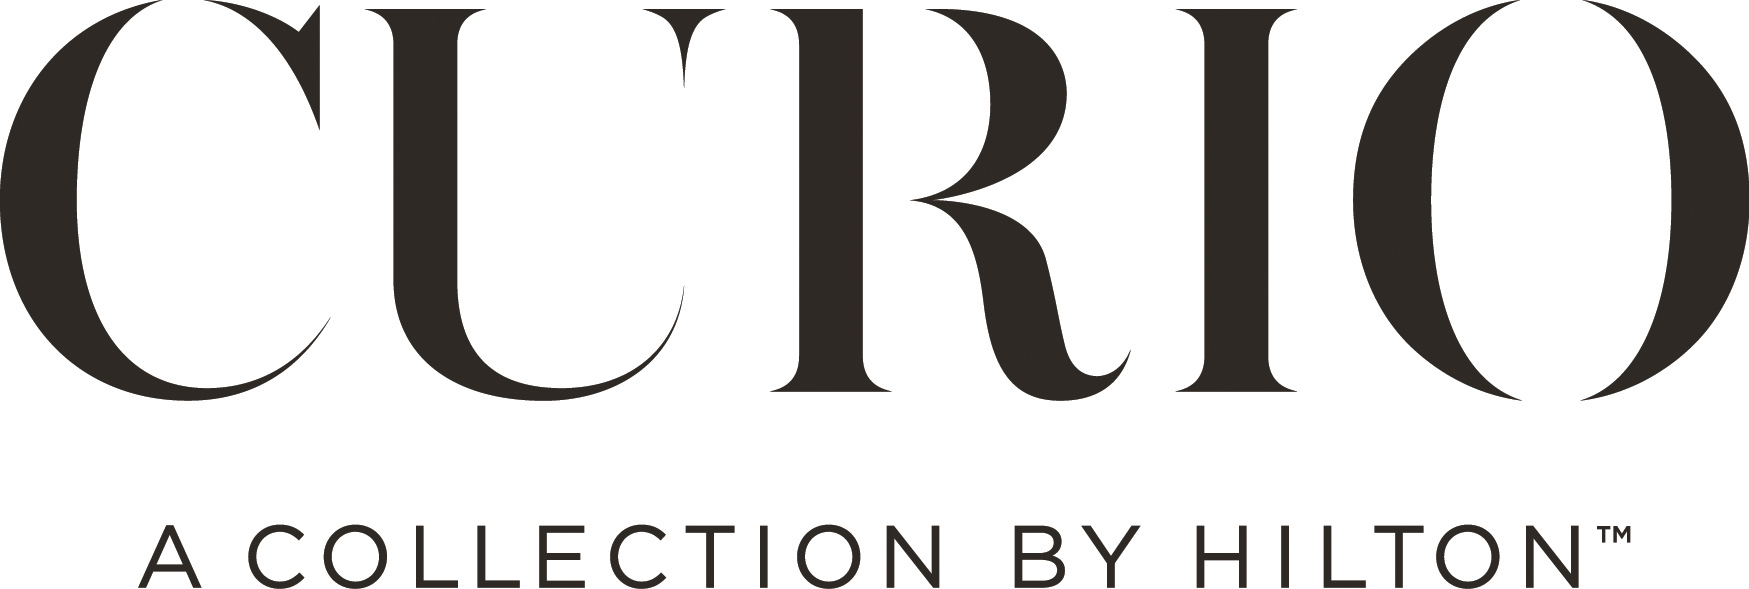 Hilton Worldwide launches Curio – A Collection by Hilton. (Graphic: Business Wire)